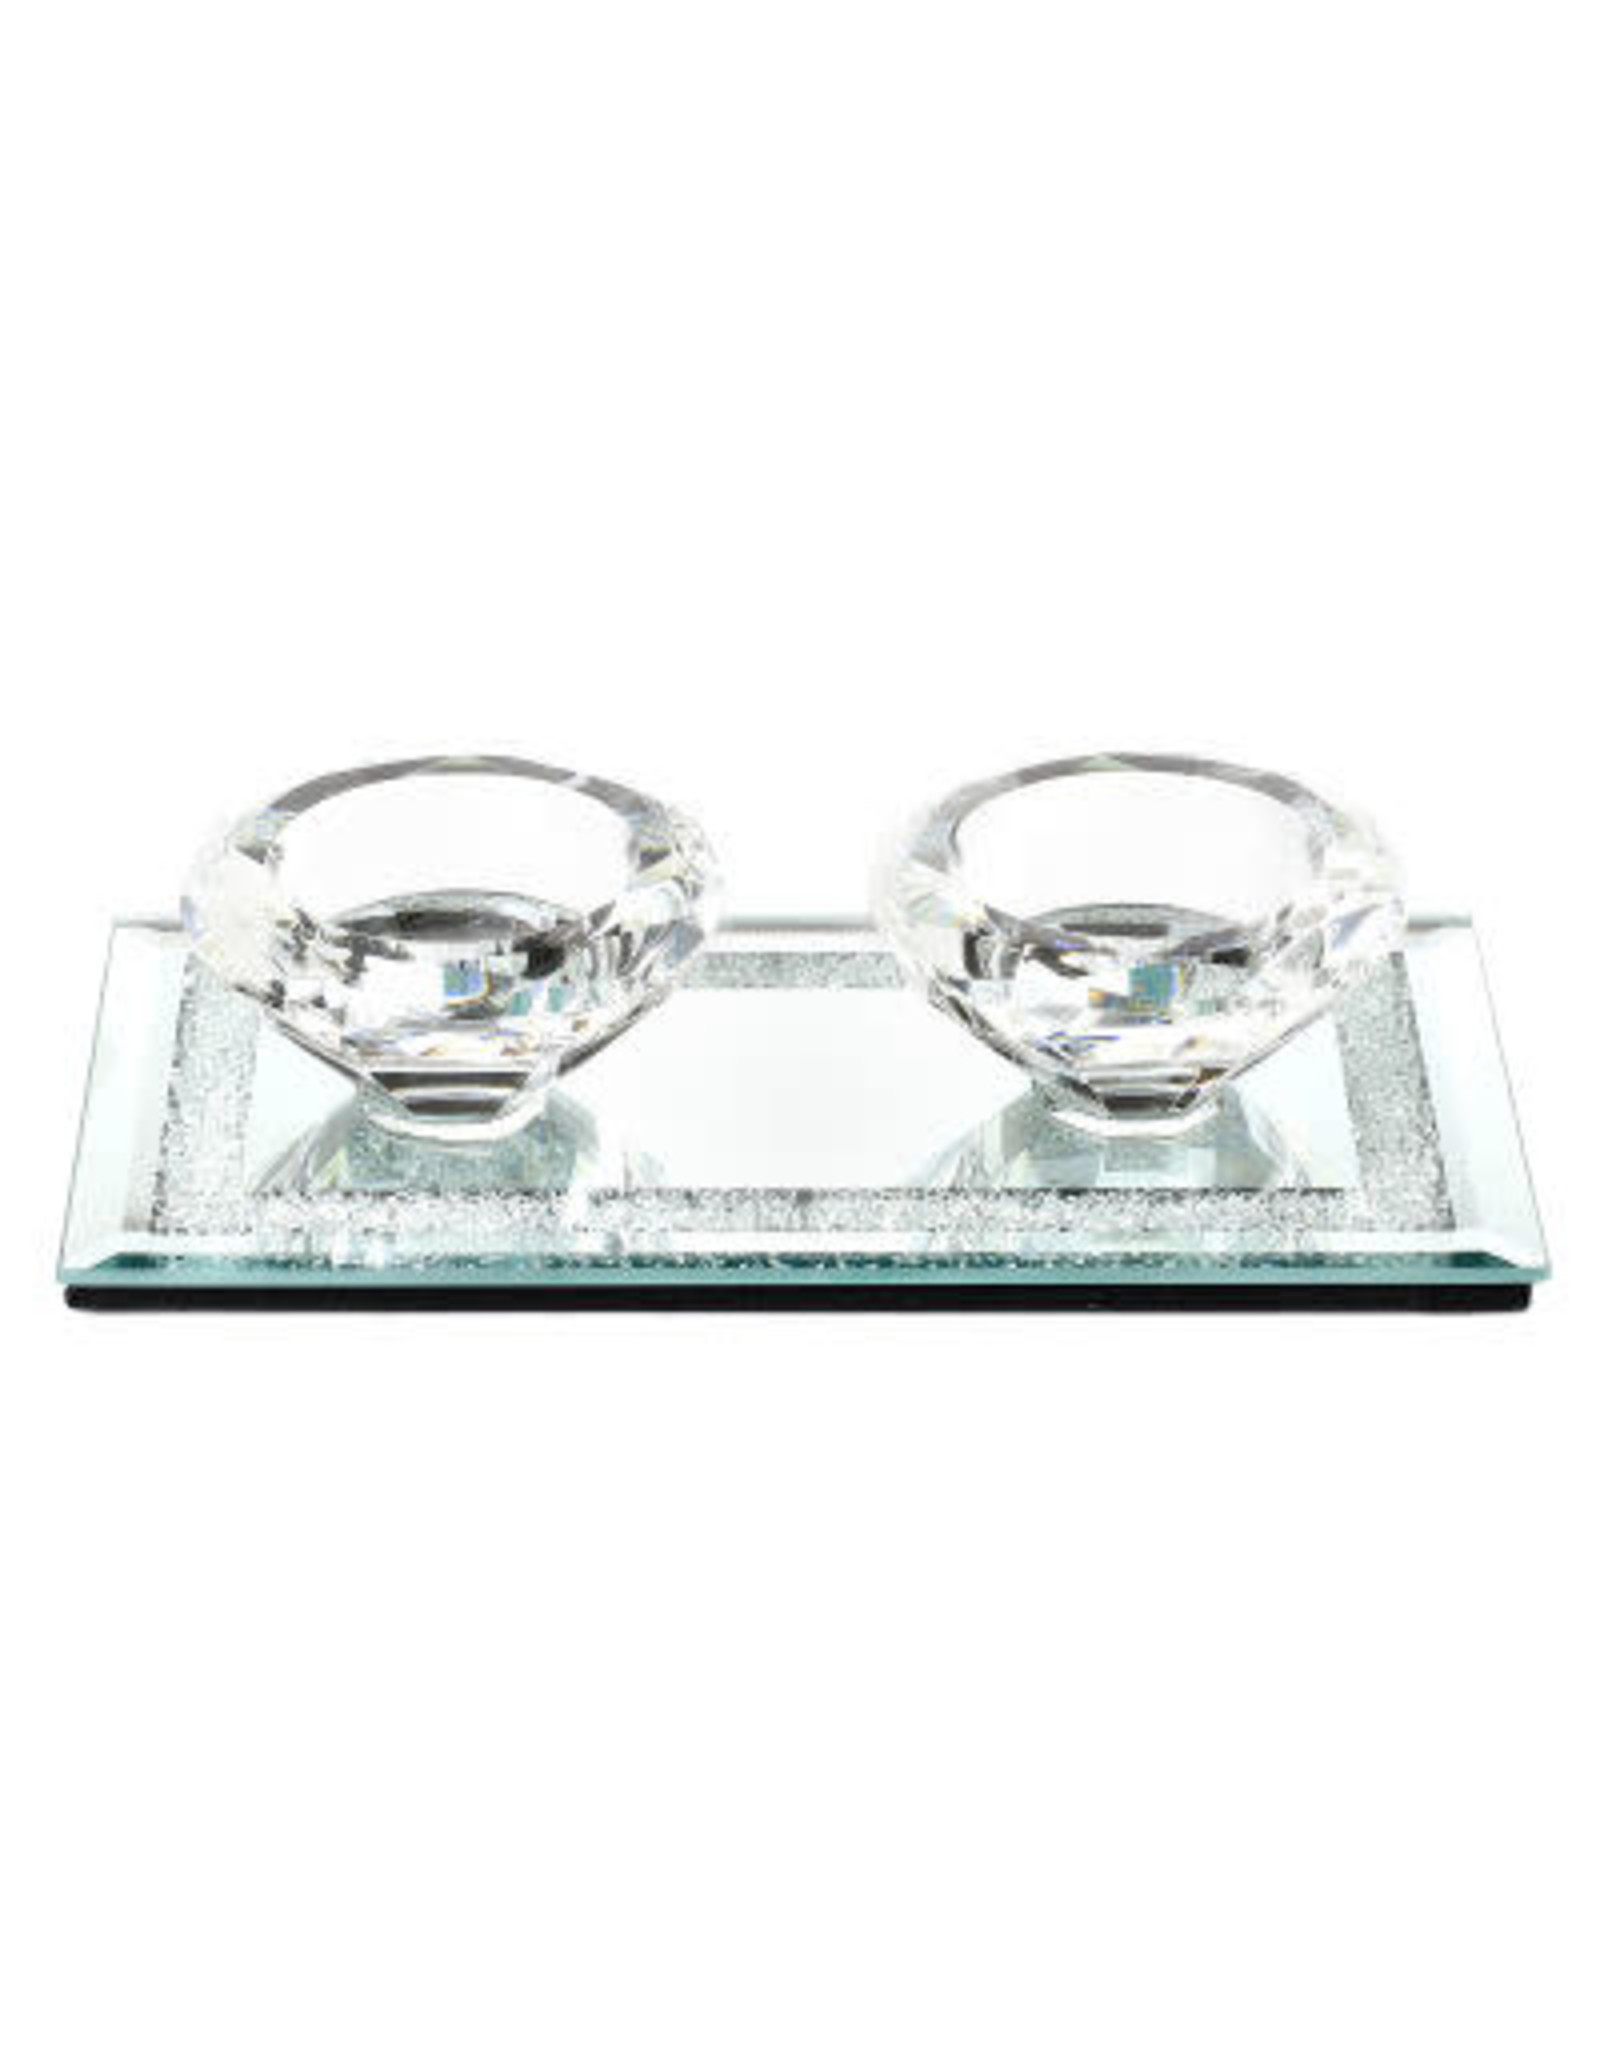 55530 Crystal Candle Holder w Glass Base 3.5x6.7""